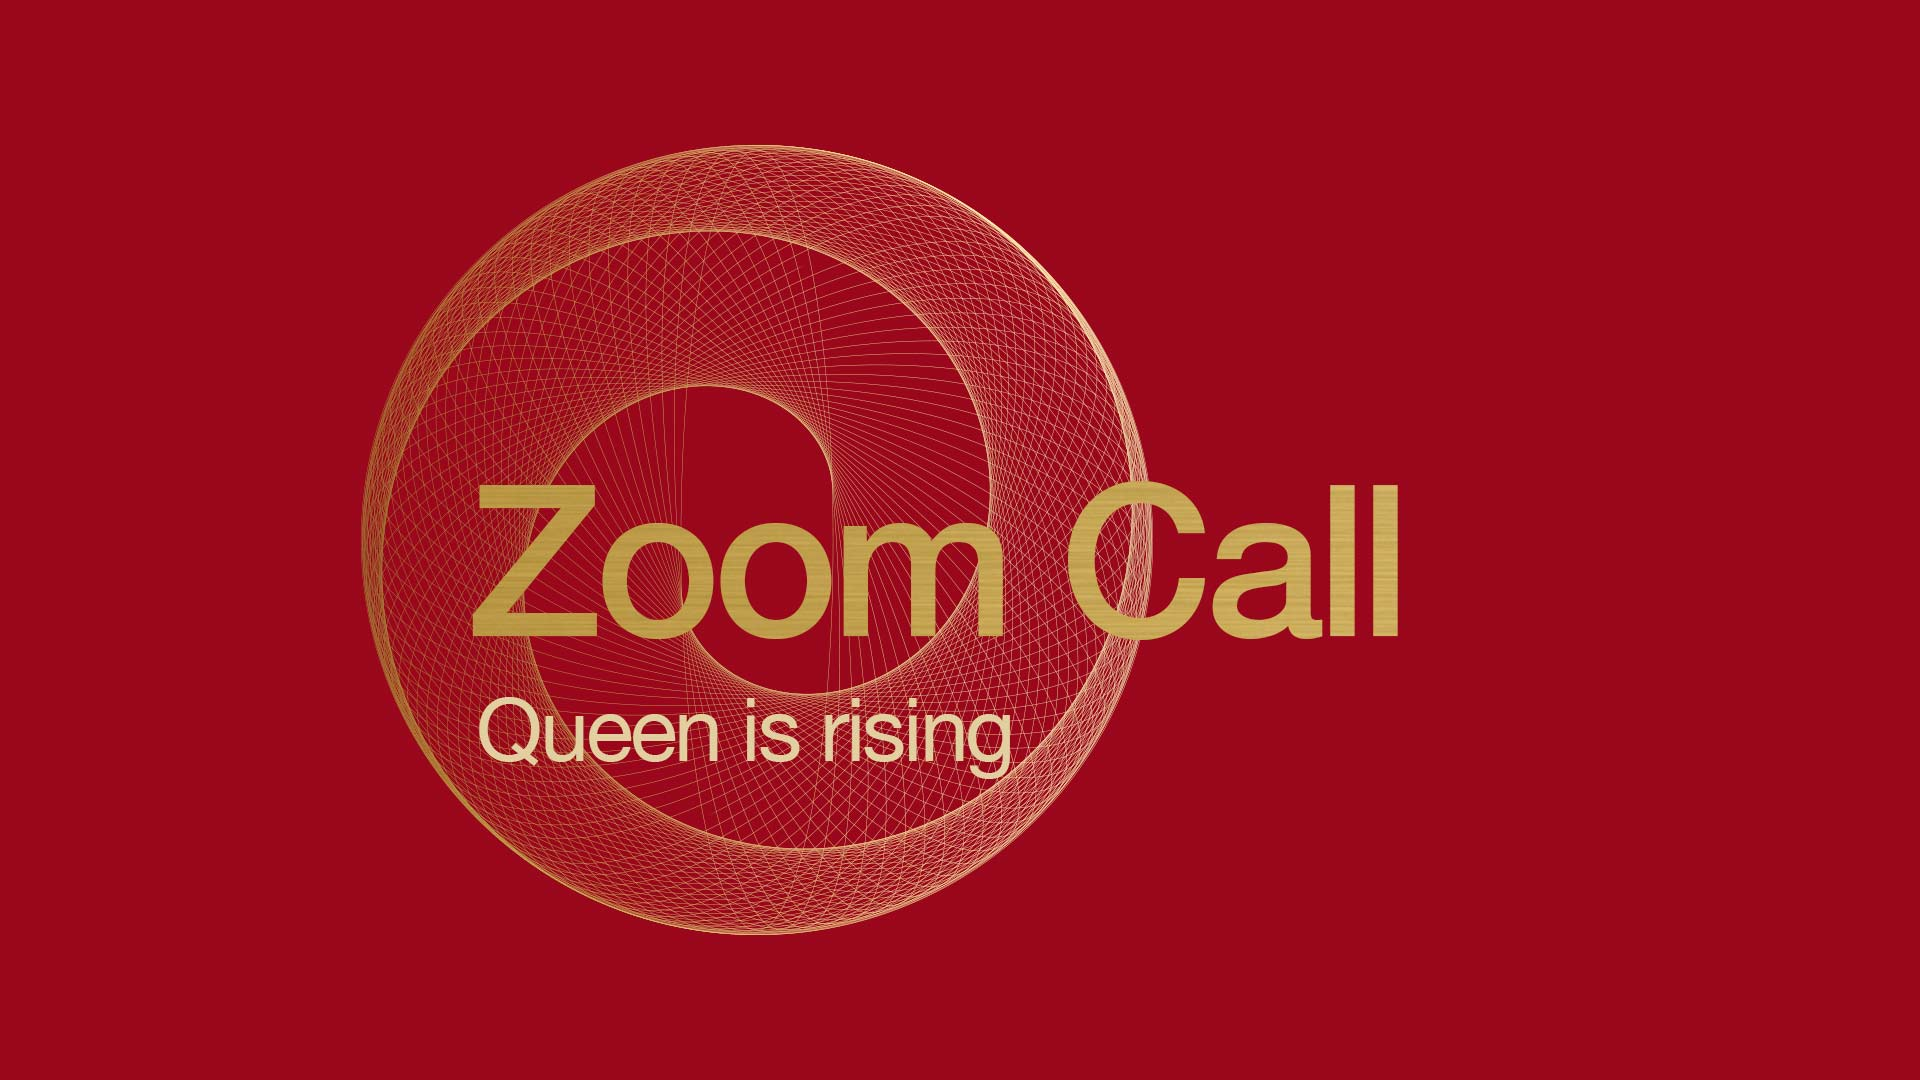 queen-is-rising-16-9-zoom-call-final